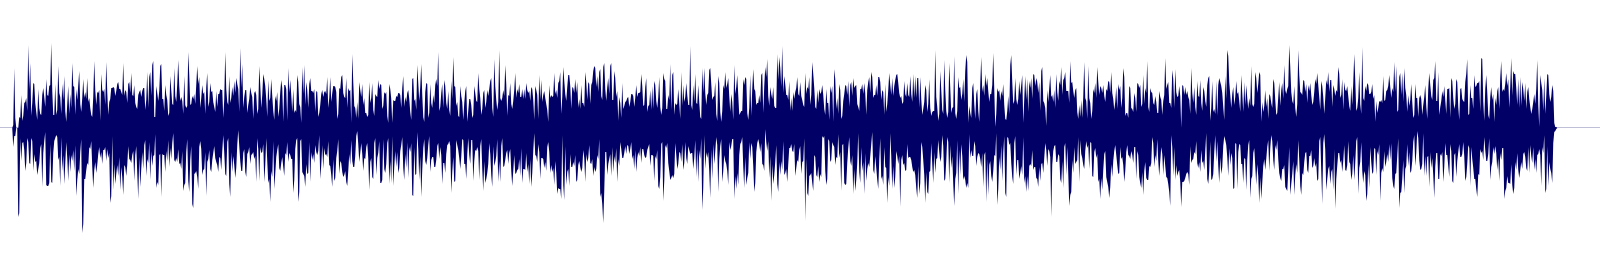 waveform of track #90059